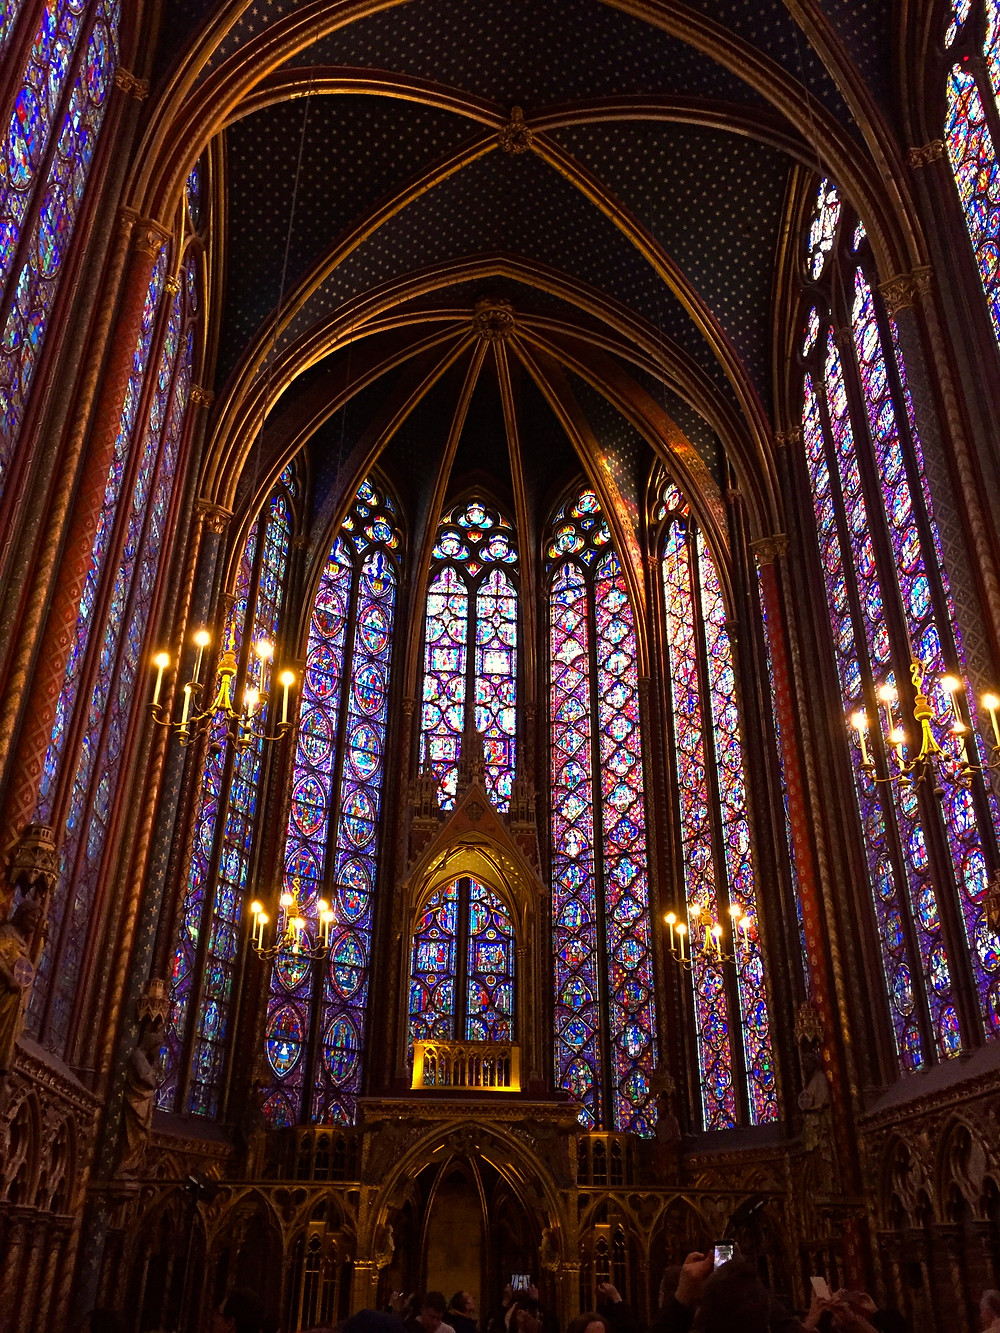 Your view at La Sainte Chapelle as classical music washes over you.